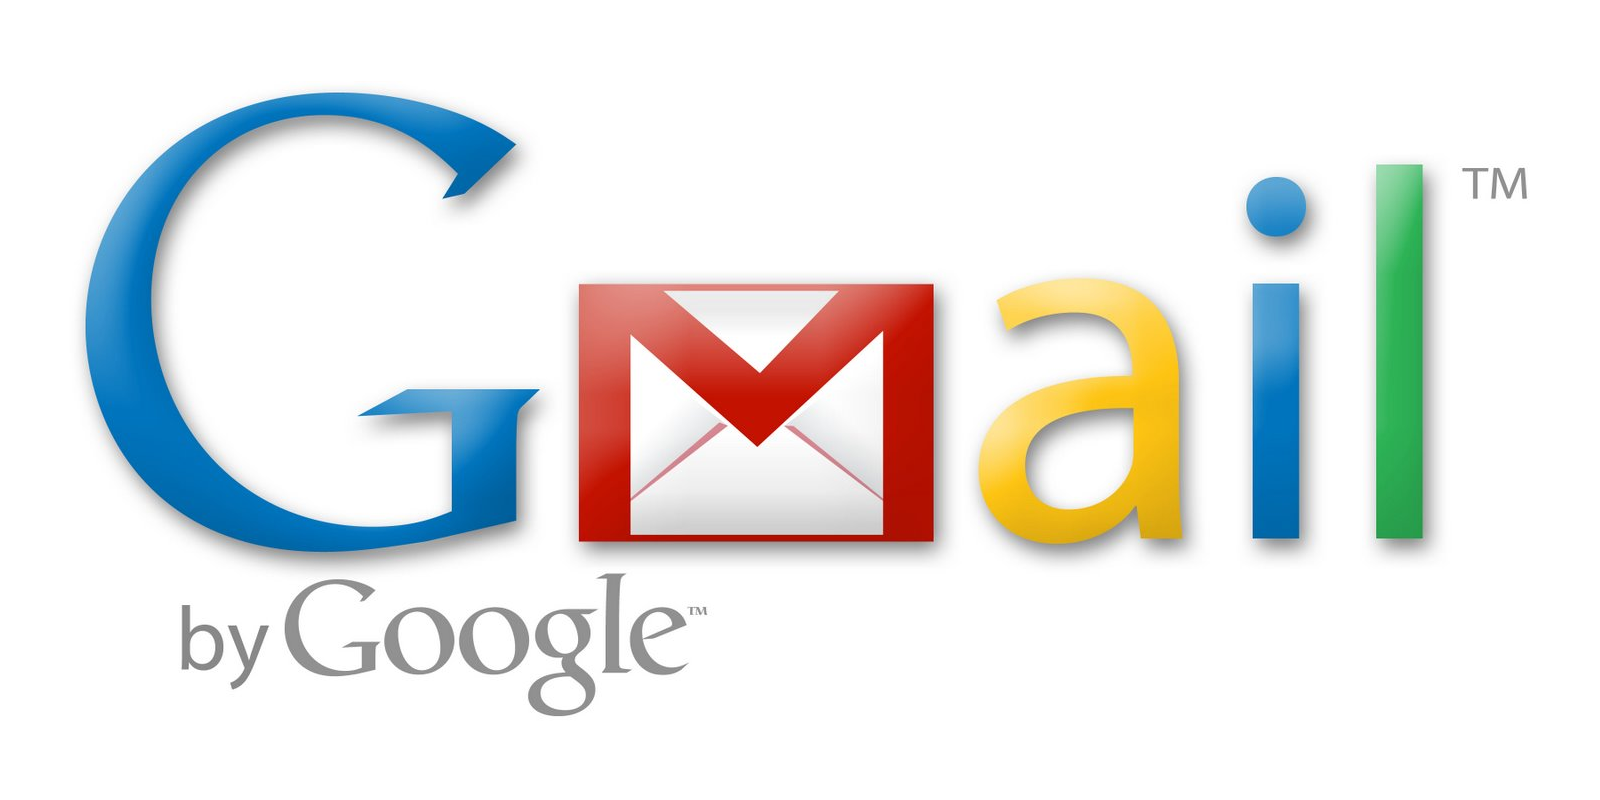 Google is resolved to destroy Gmail